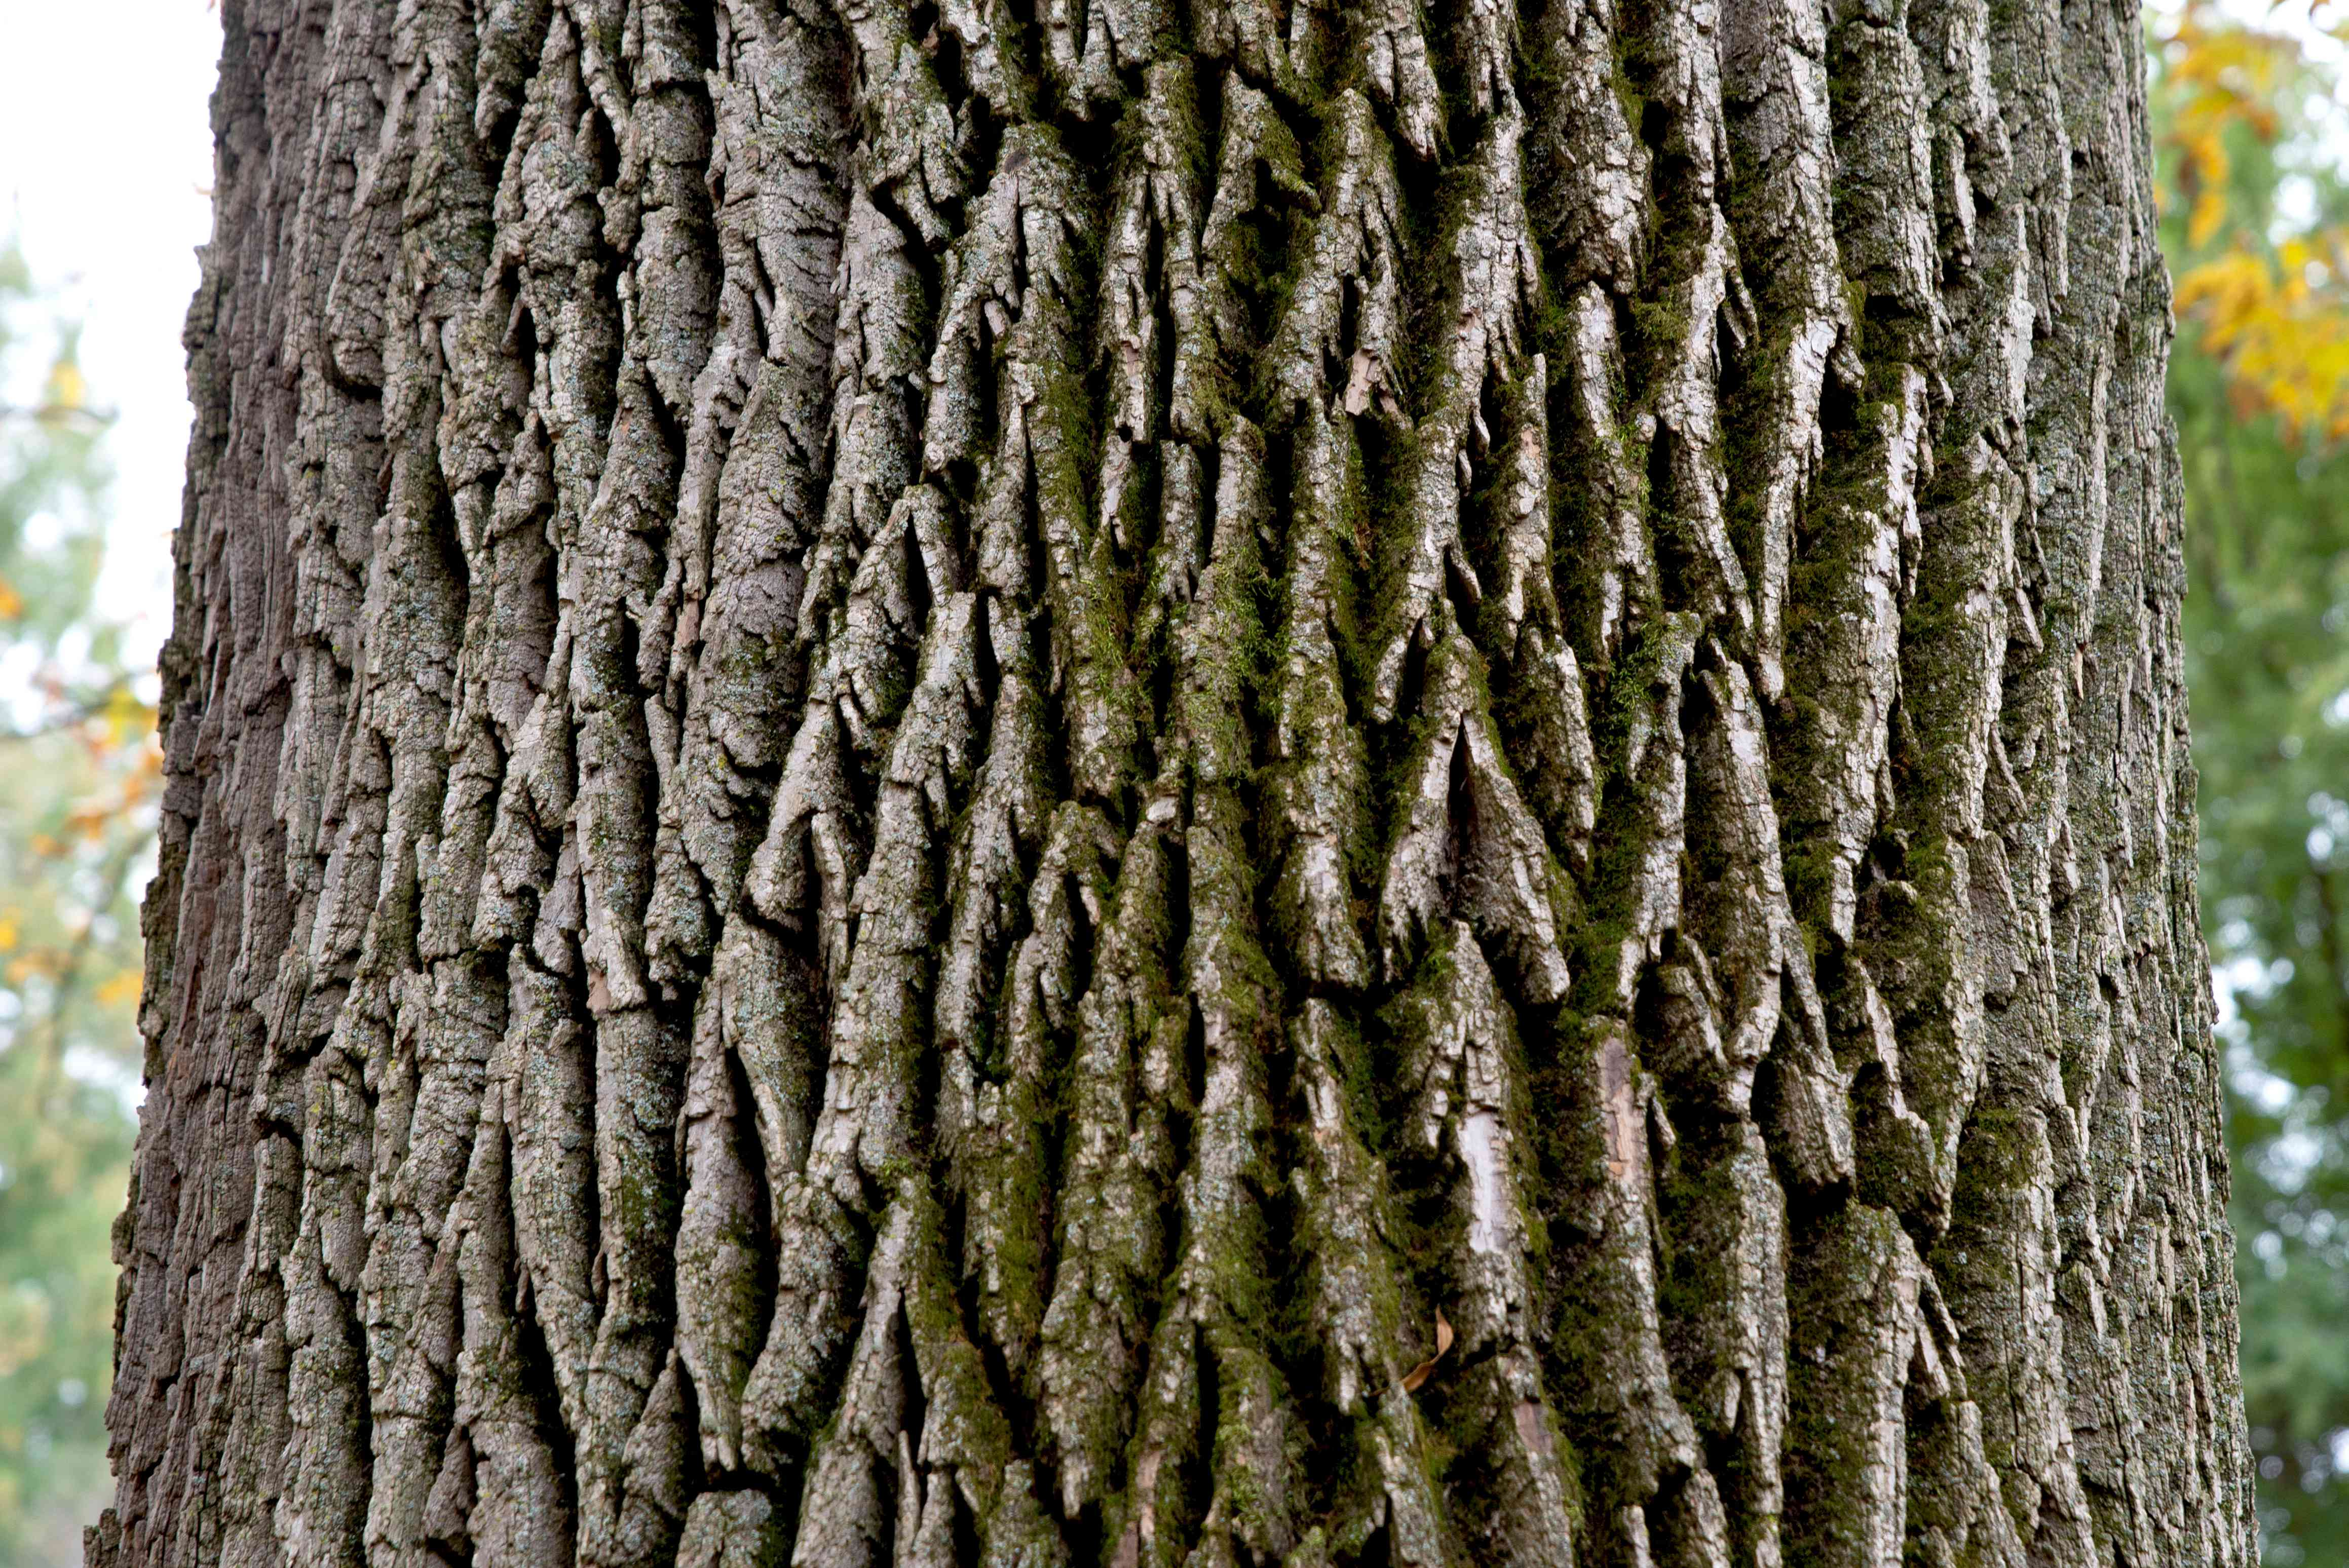 Pumpkin ash tree trunk with deep grooves and ash-colored wood closeup